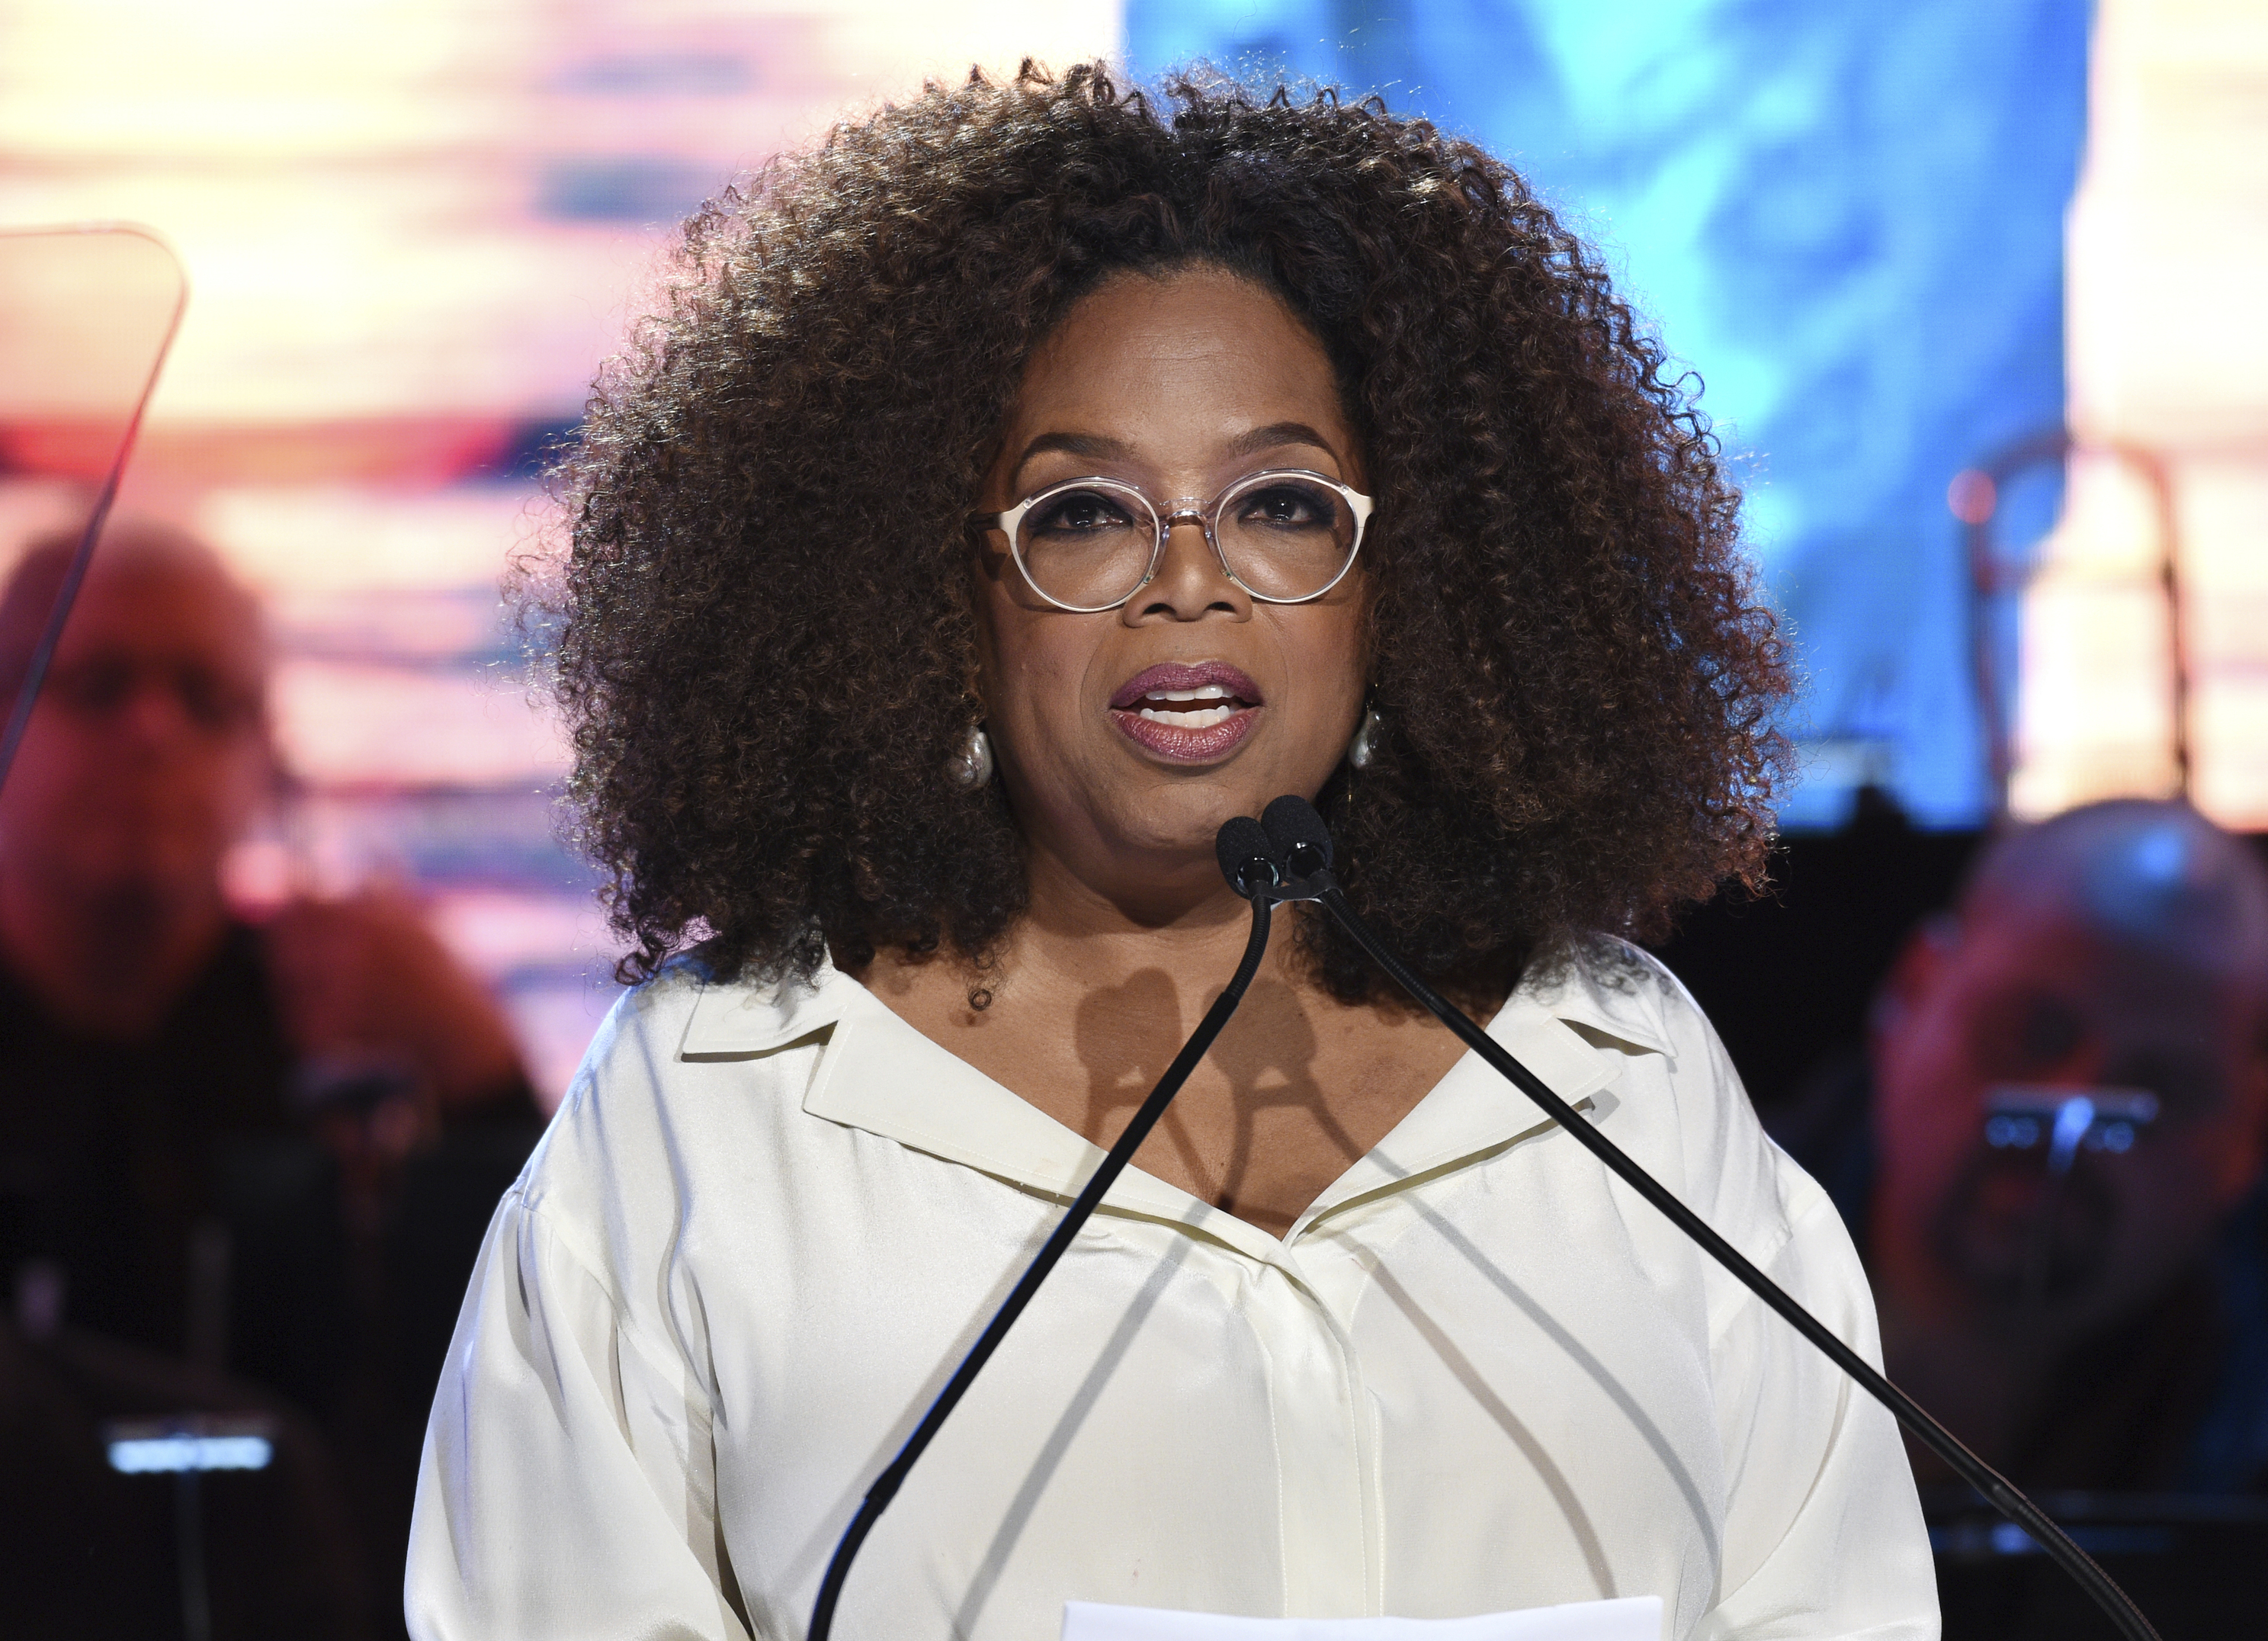 Oprah speaks out on mass shootings: 'What people are missing is a core moral center'